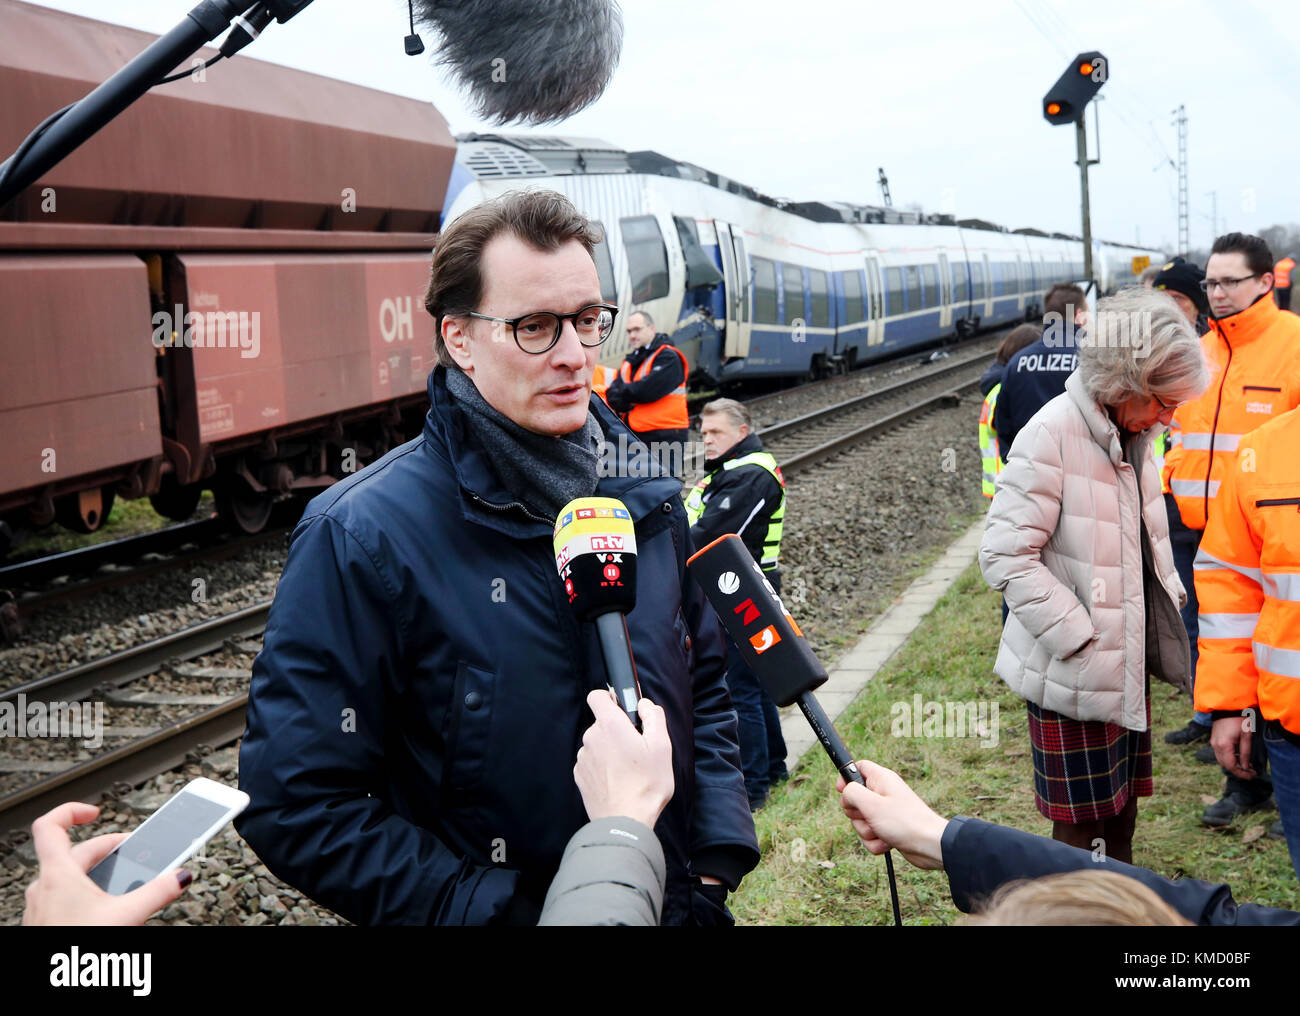 Meerbusch, Germany. 6th Dec, 2017. North Rhine-Westphalia's minister of transport Hendrik Wuest gives an interview - Stock Image